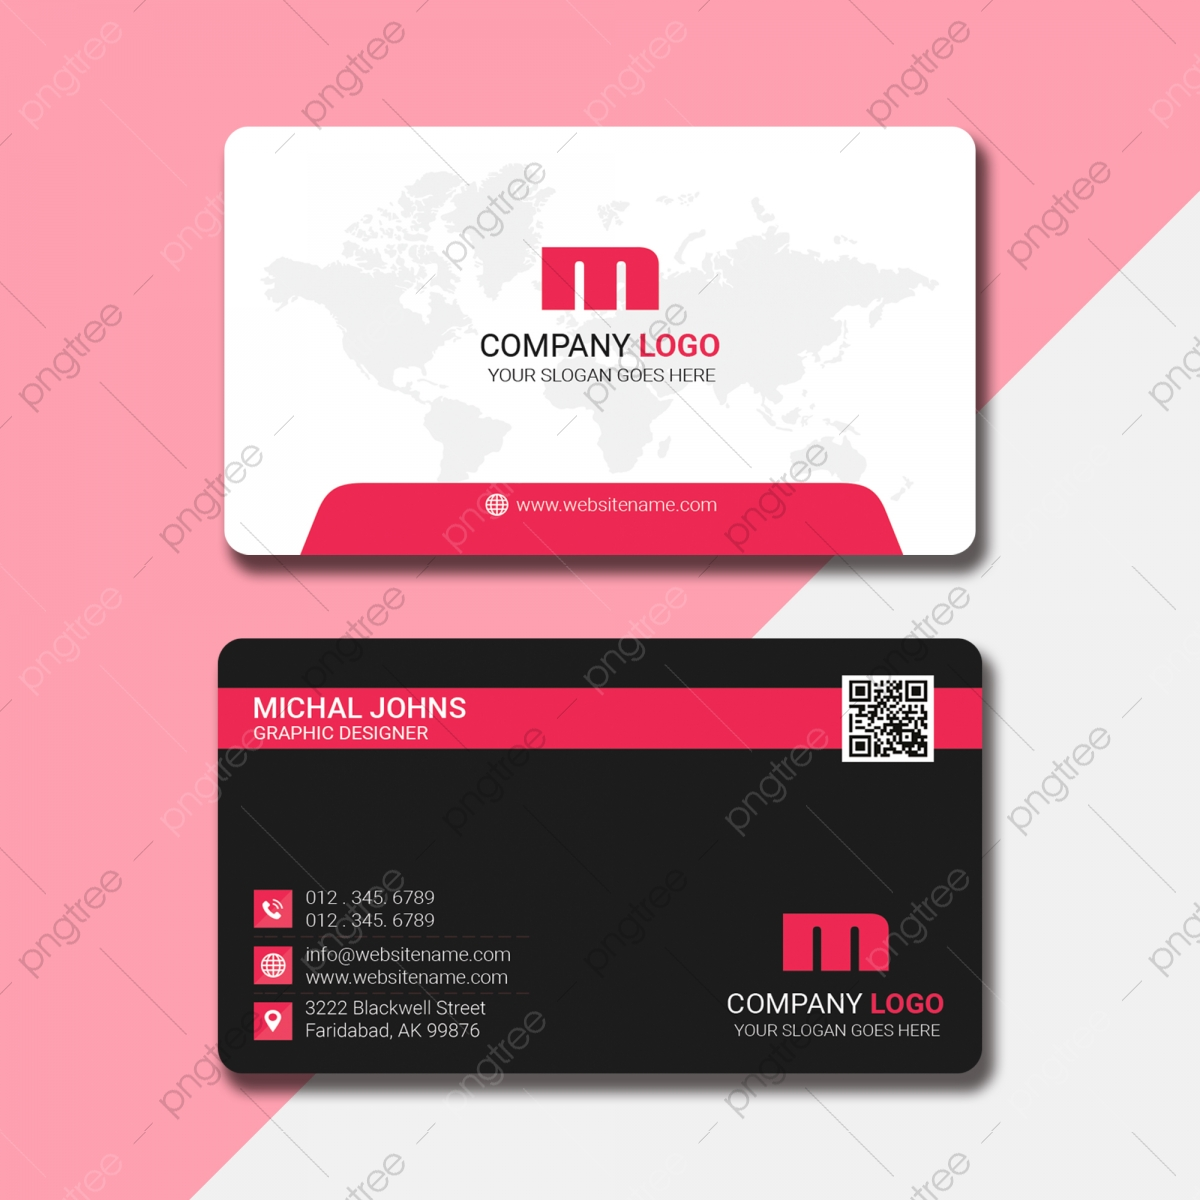 Creative Business Card With Qr Code Place Template Download on Pngtree